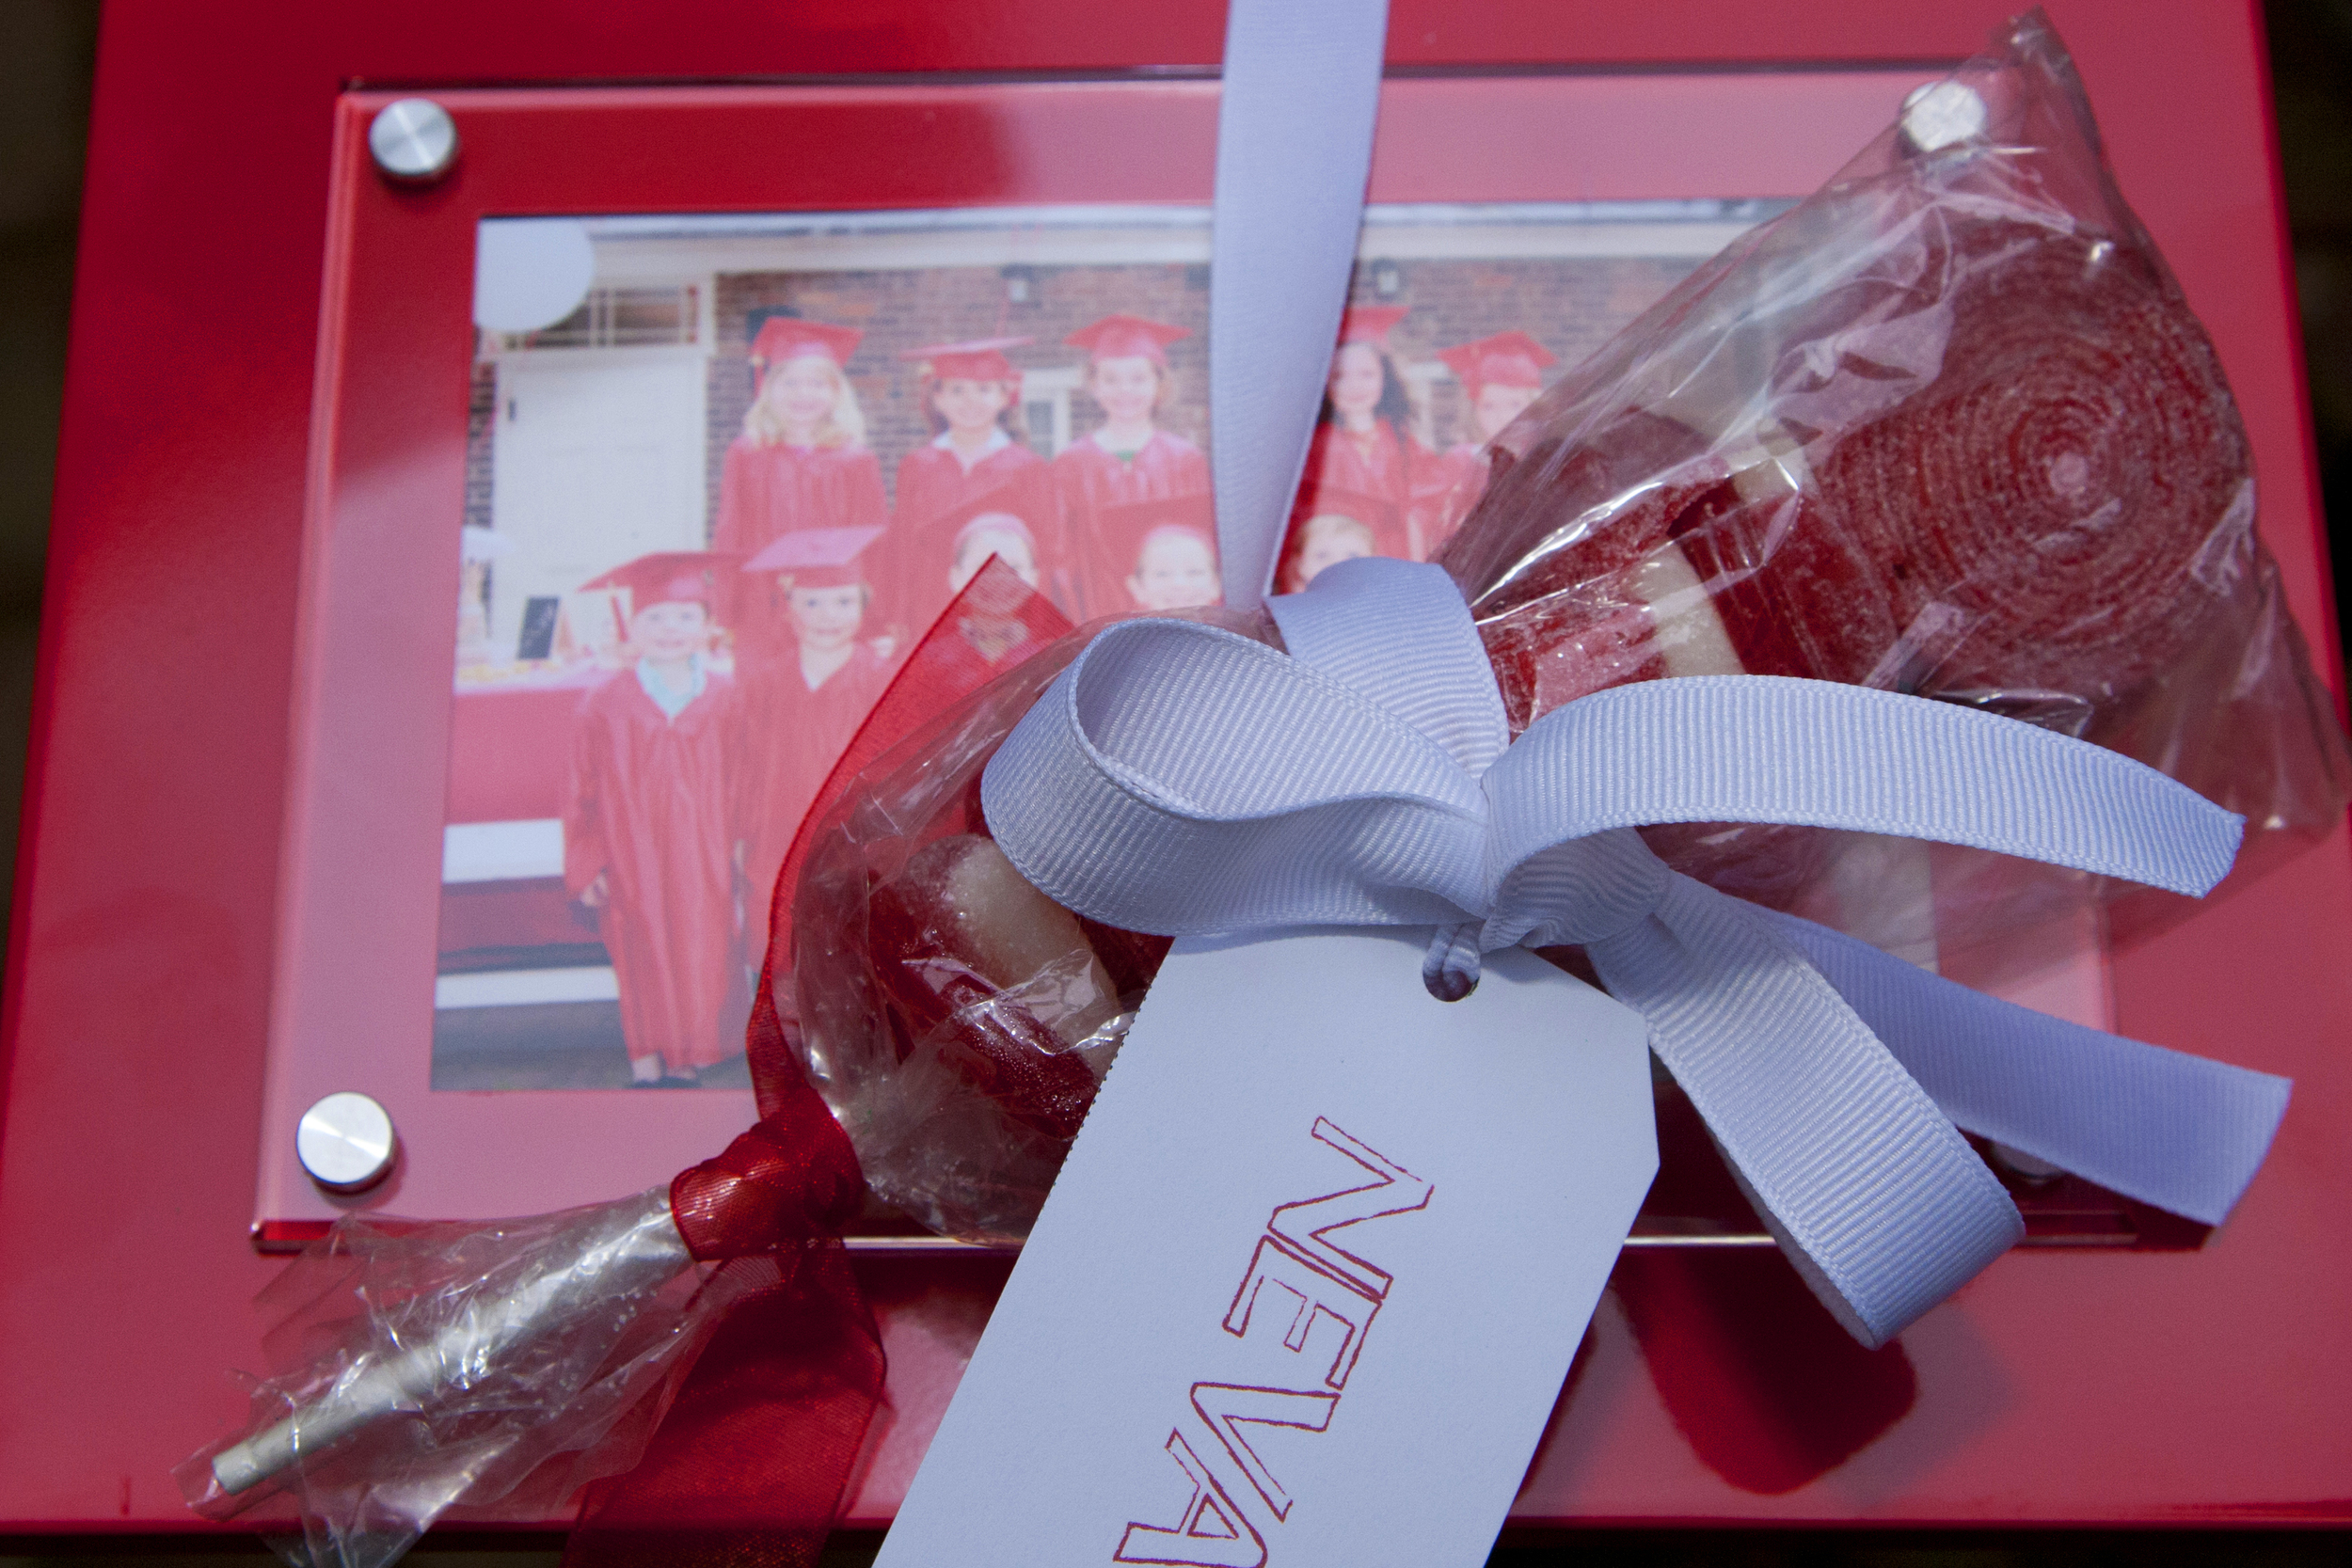 Red and White Graduation Party | LIG Events | Washington, DC Wedding and Event Planners